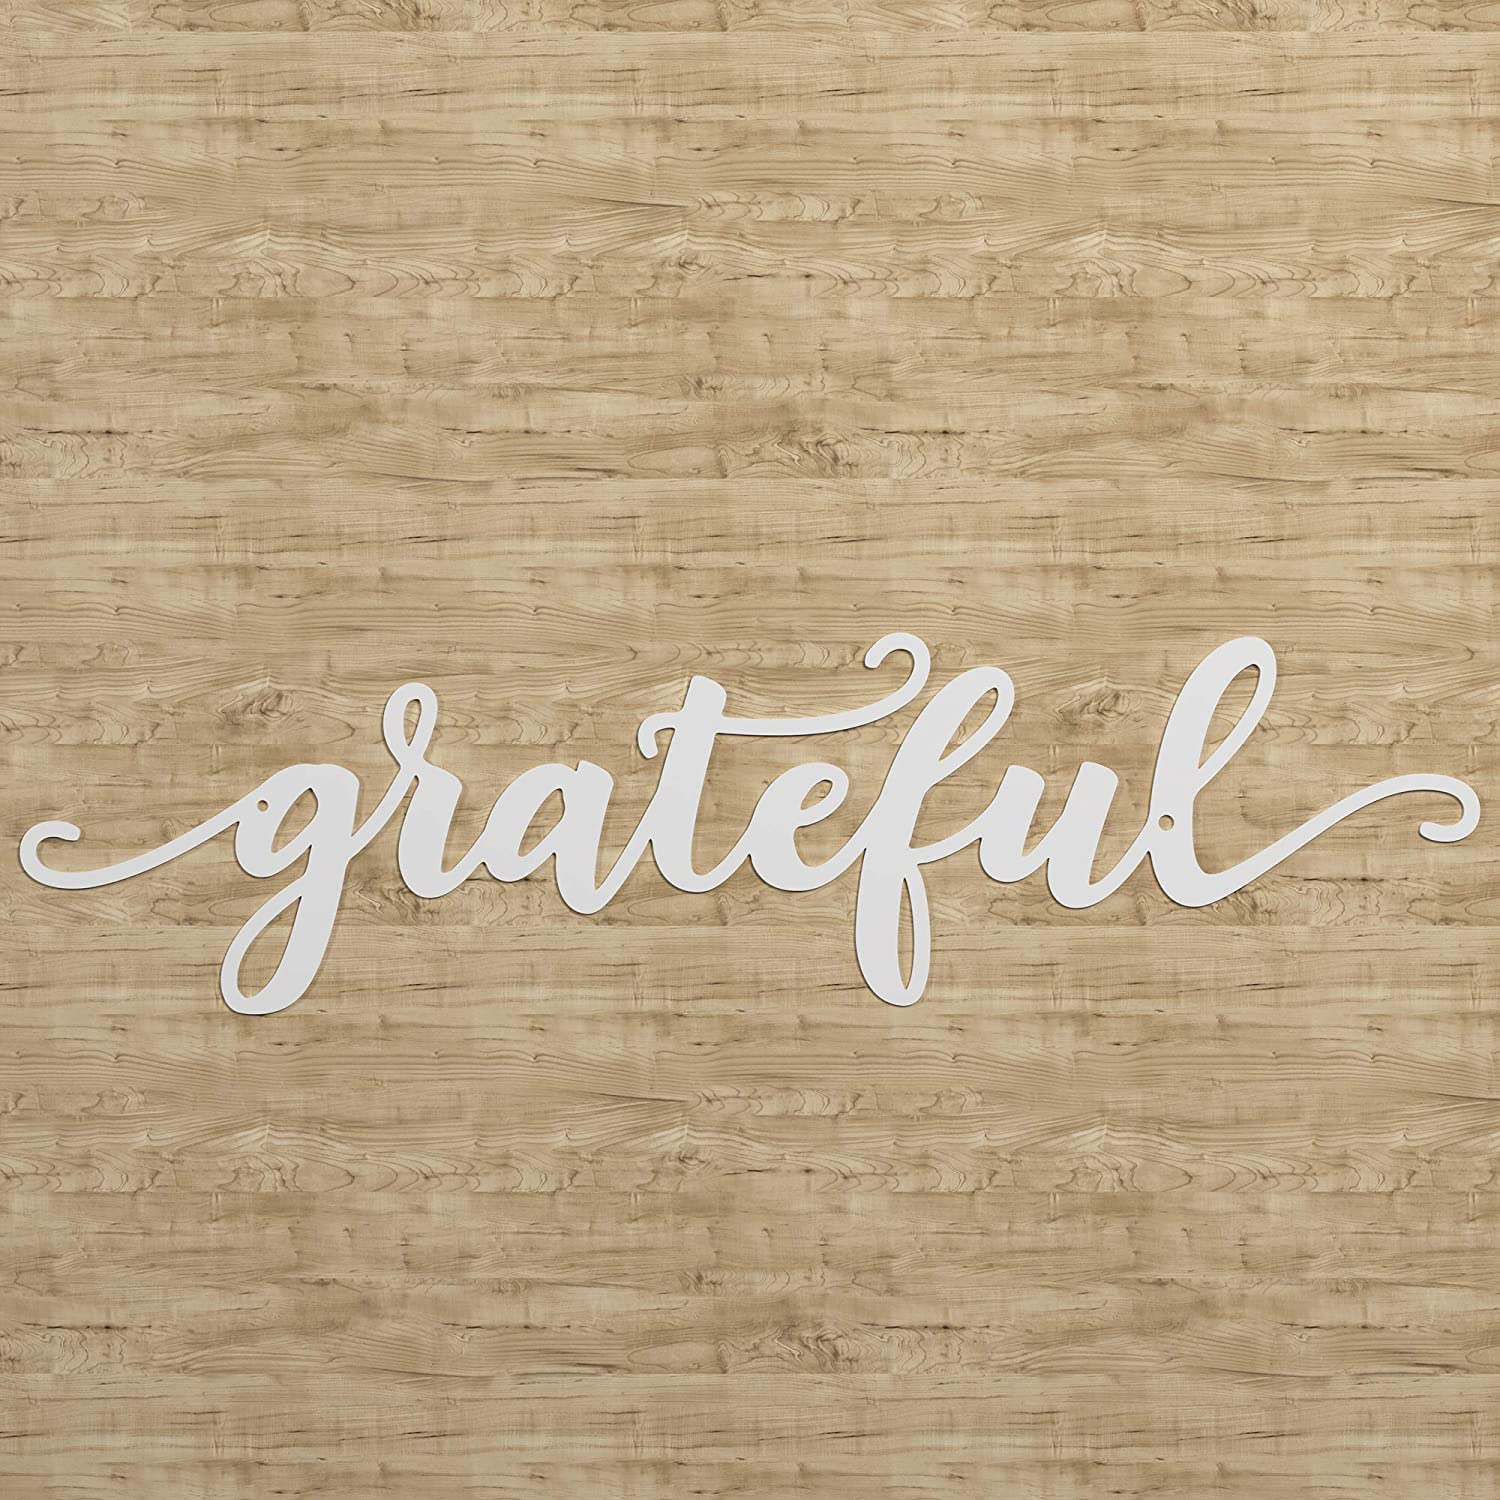 "American Maker 'Grateful' Steel Wall Art Home Decor, Laser Cut Metal Sign Decoration, Hanging Word Plaque for Family Room, Entryway or Kitchen, Made in the USA, White, 17"" x 4.25"""